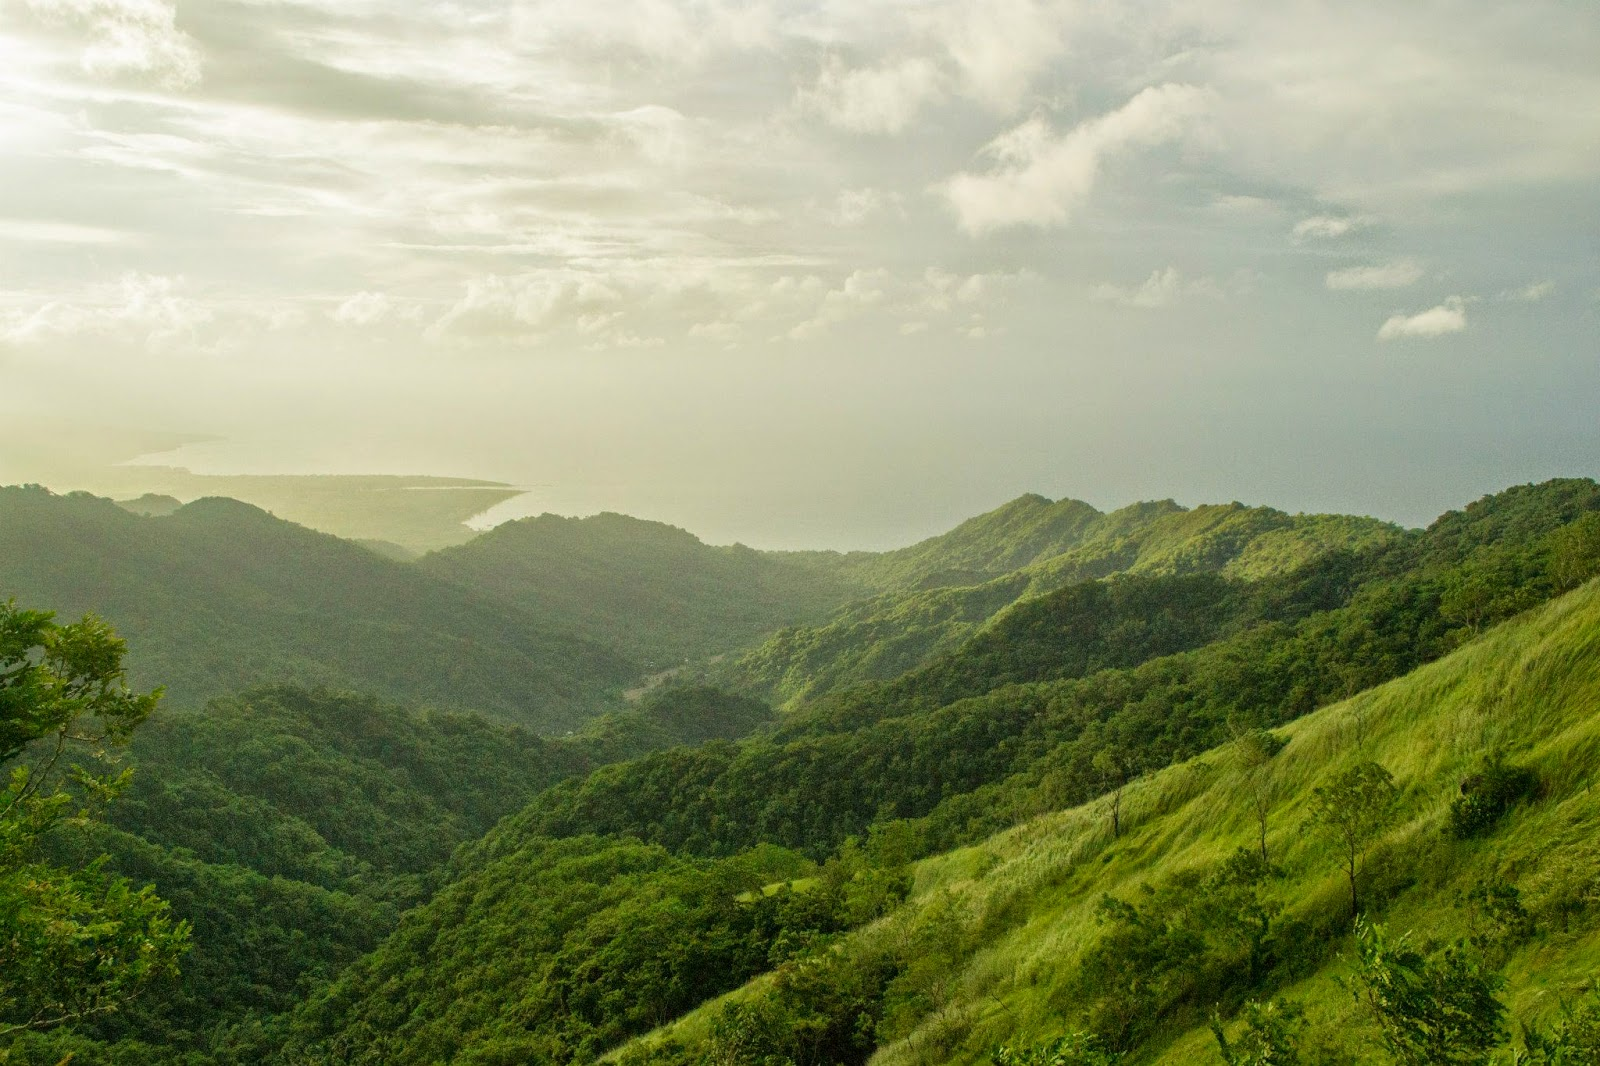 Mt. Tibig - View at the Cliff near the Summit - Overlooking Lobo Beach